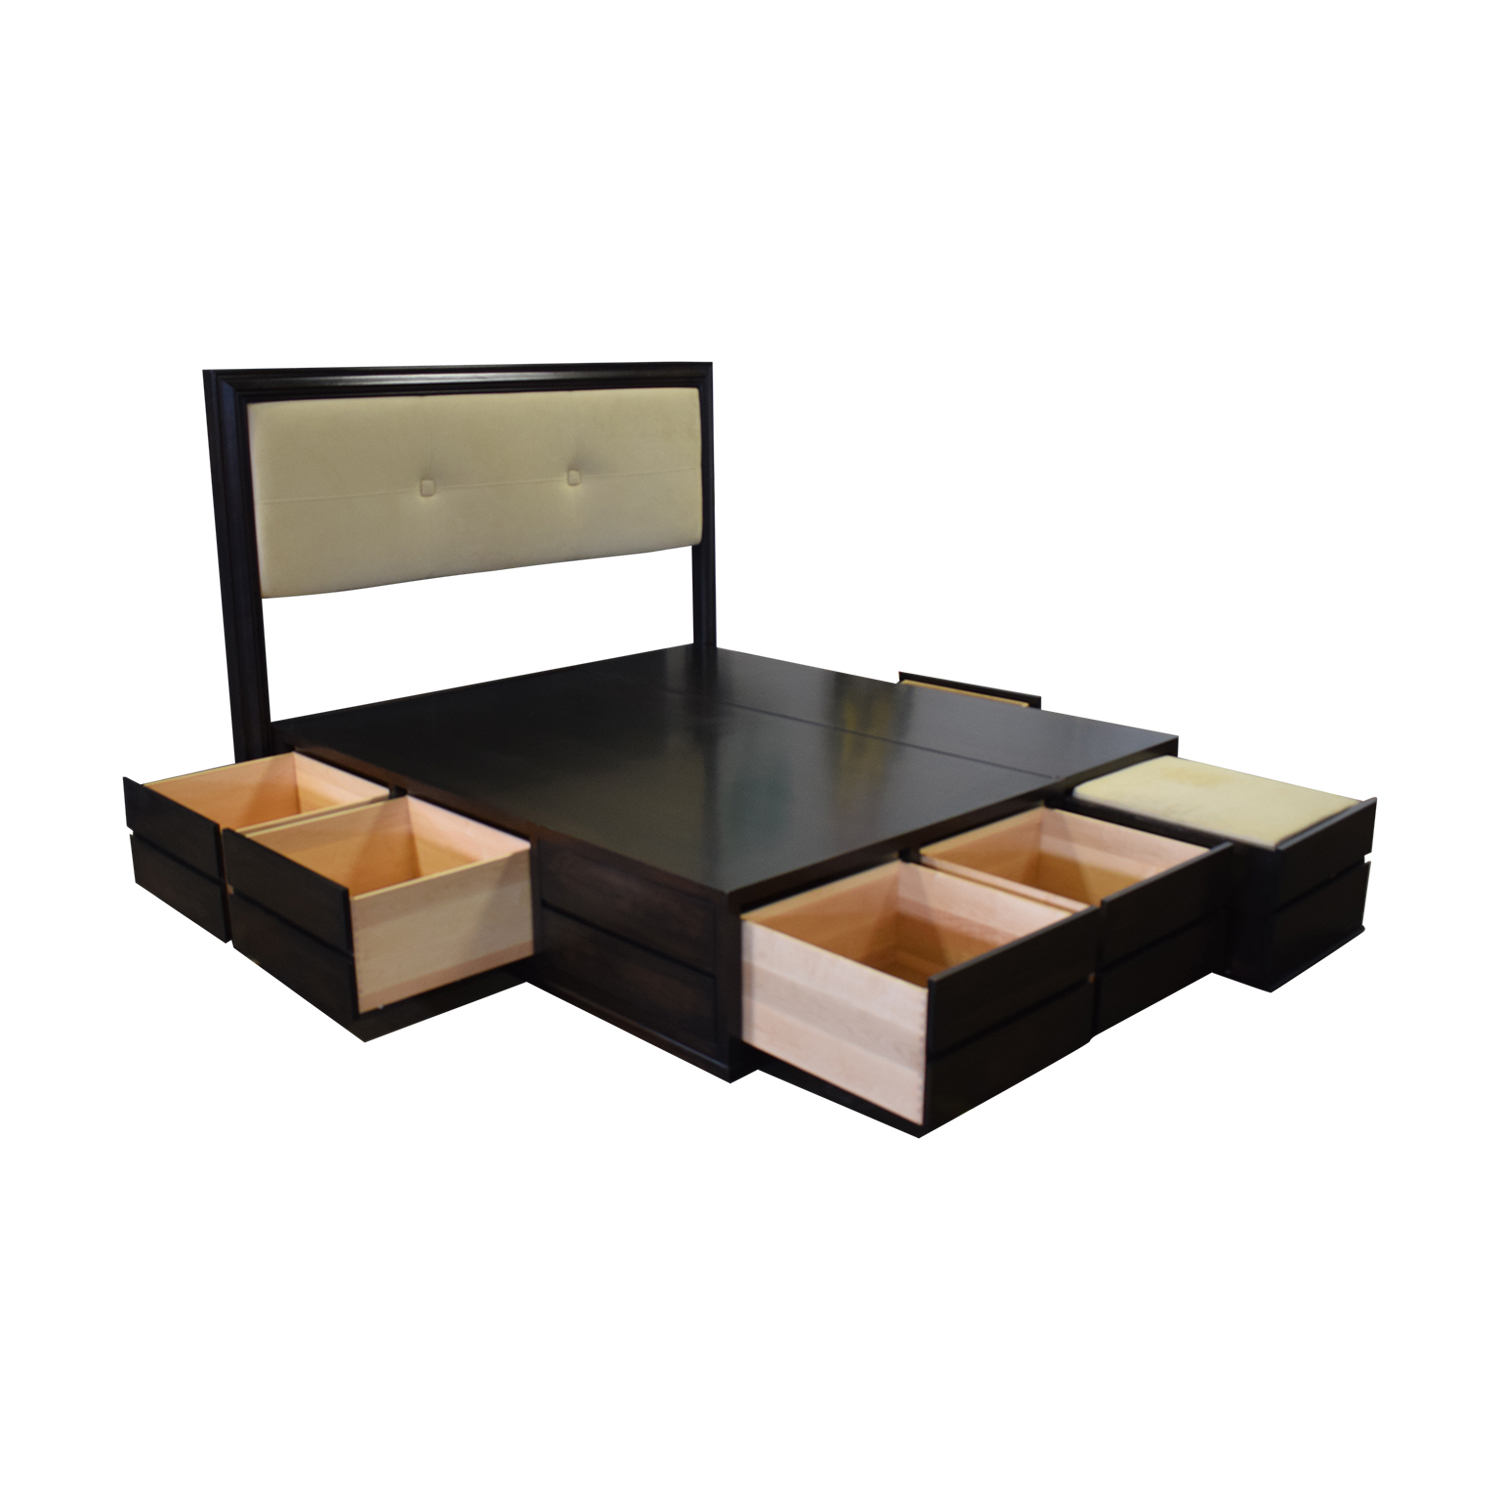 Couture Design Cal King Platform Storage Bed price